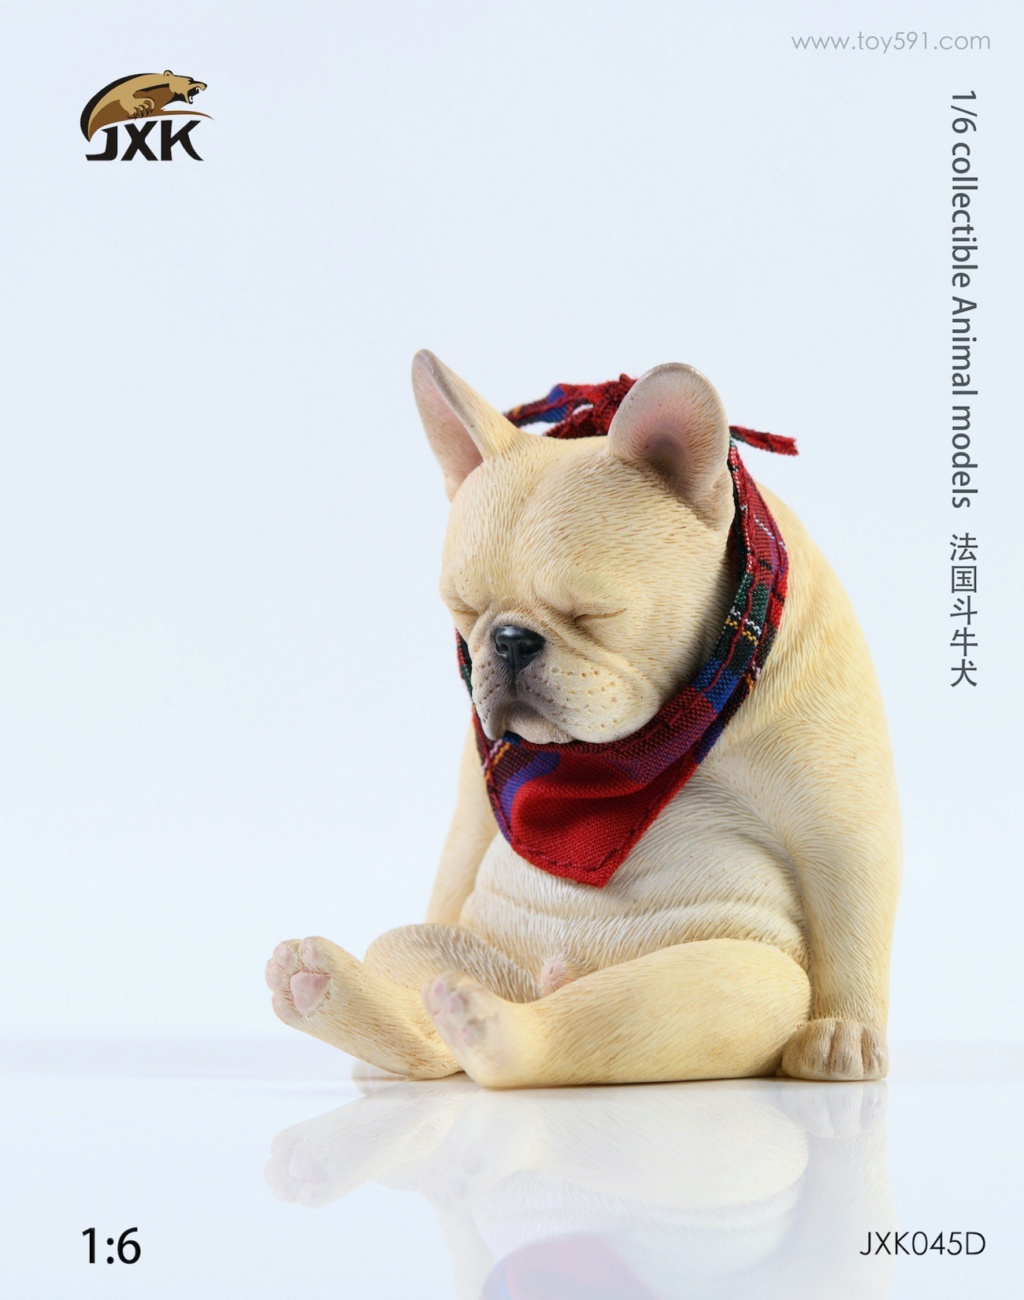 Dog - NEW PRODUCT: JXK 1/6 Decadent Dog JXK045 French Bulldog + Scarf Da7ac610